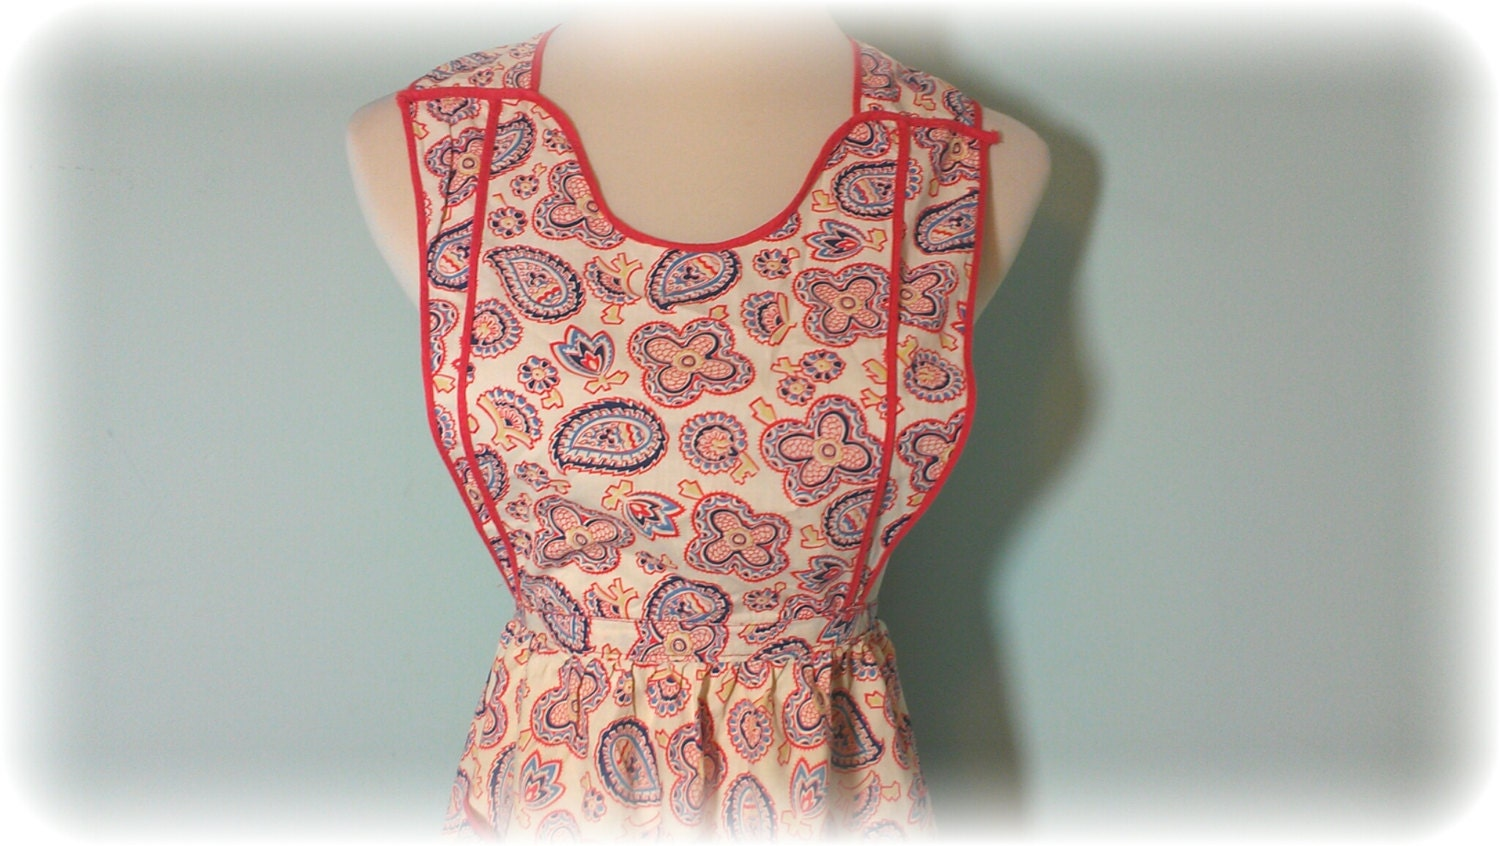 Cute Vintage 1960's Bibbed or Full Apron W/ Floral and Paisley Design - tidbitsandtreasure